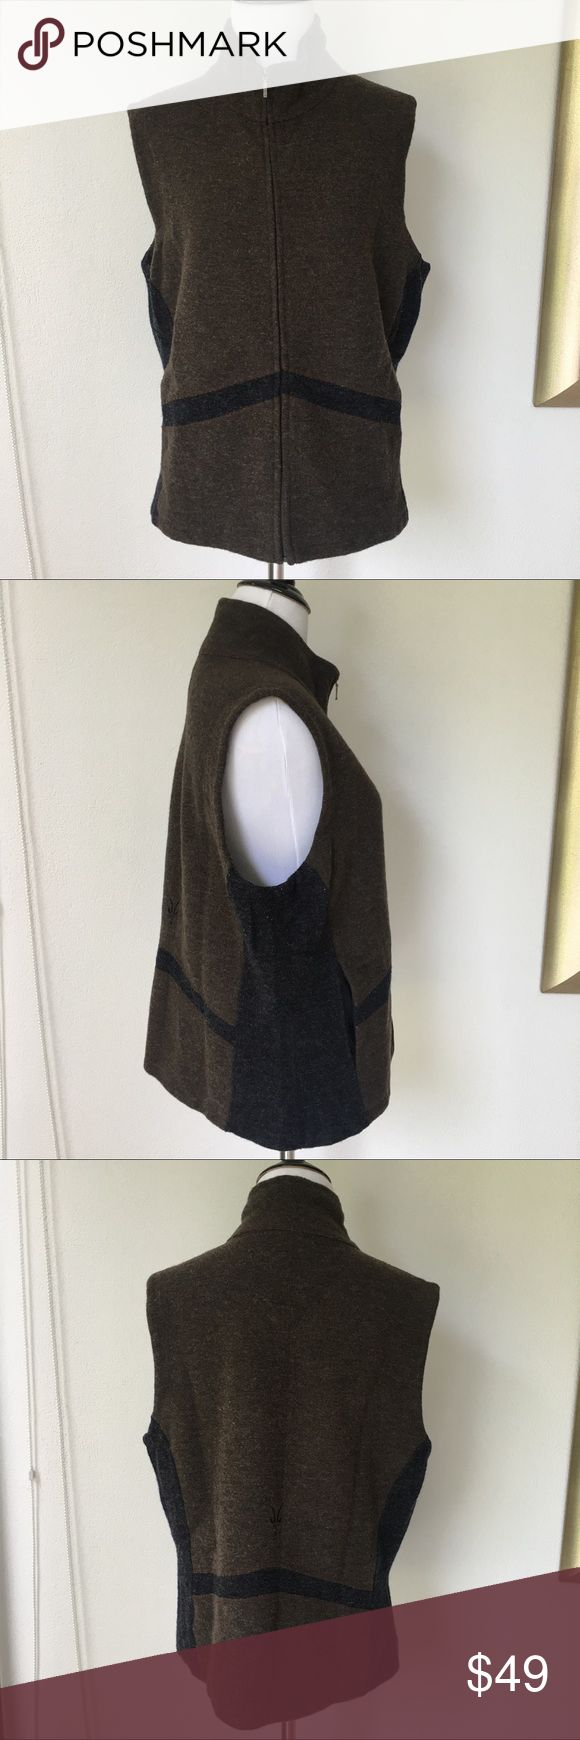 "Ibex Women's Wool Brown Full Zip up Vest size XL Preowned authentic Ibex Women's Wool Brown Zip up Vest size XL. Armpit to armpit is 20.5"" inches. Collar to hem is 22"" inches. Please look at pictures for better reference. Happy shopping! ibex Jackets & Coats Vests"